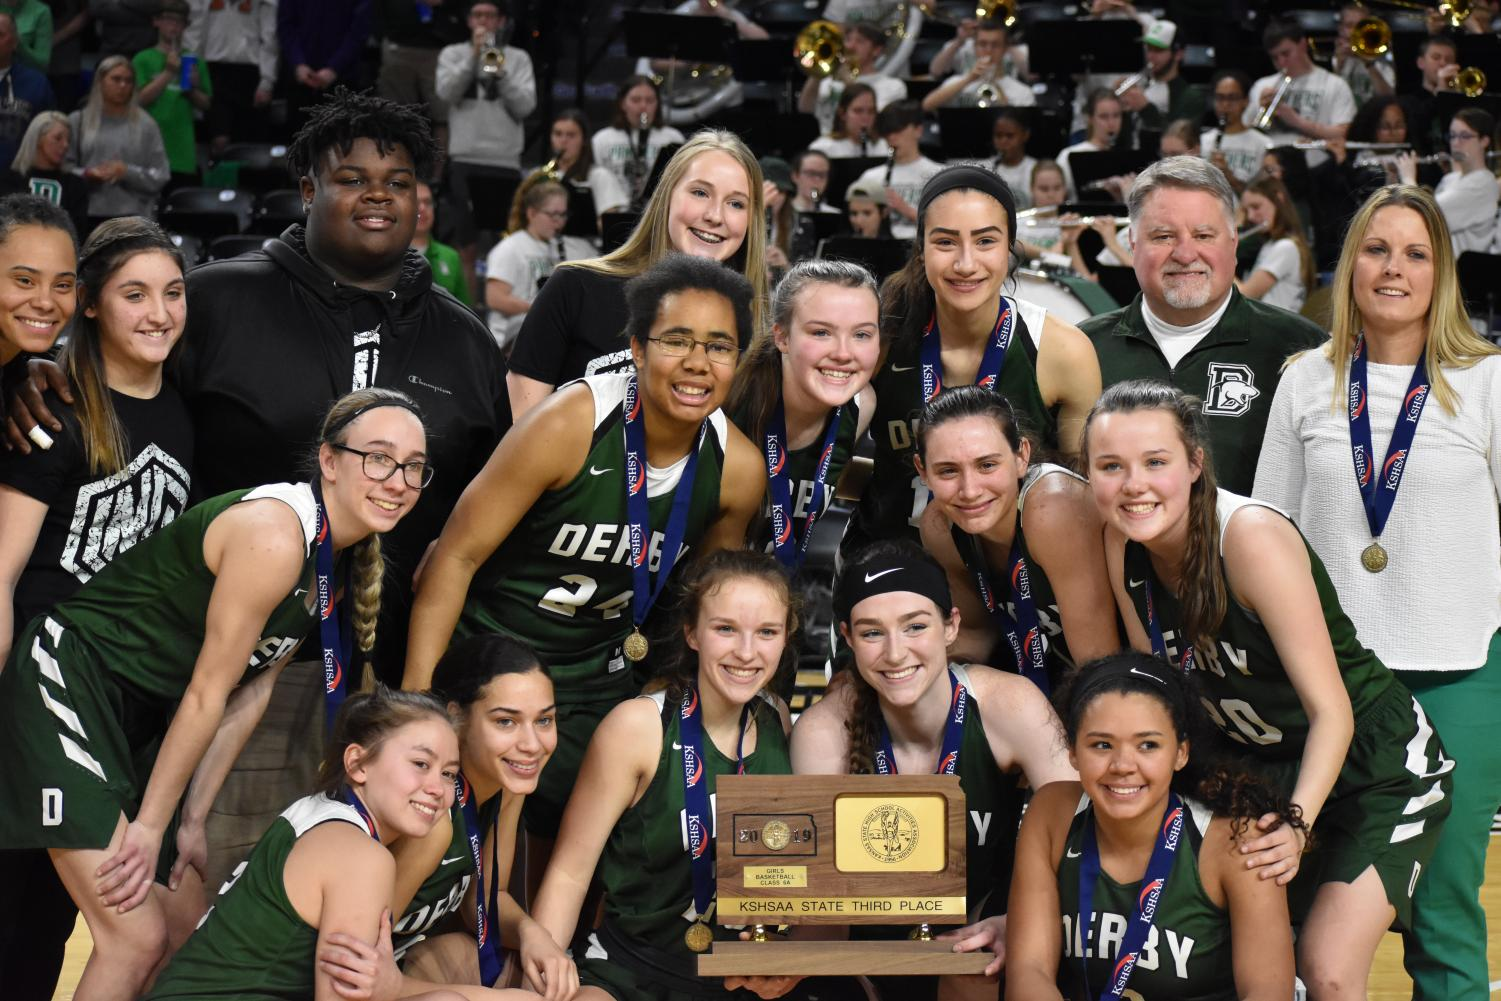 03/09/19 Derby vs. Olathe Northwest 6A girls state tournament (photo gallery by Damien Matmanivong)